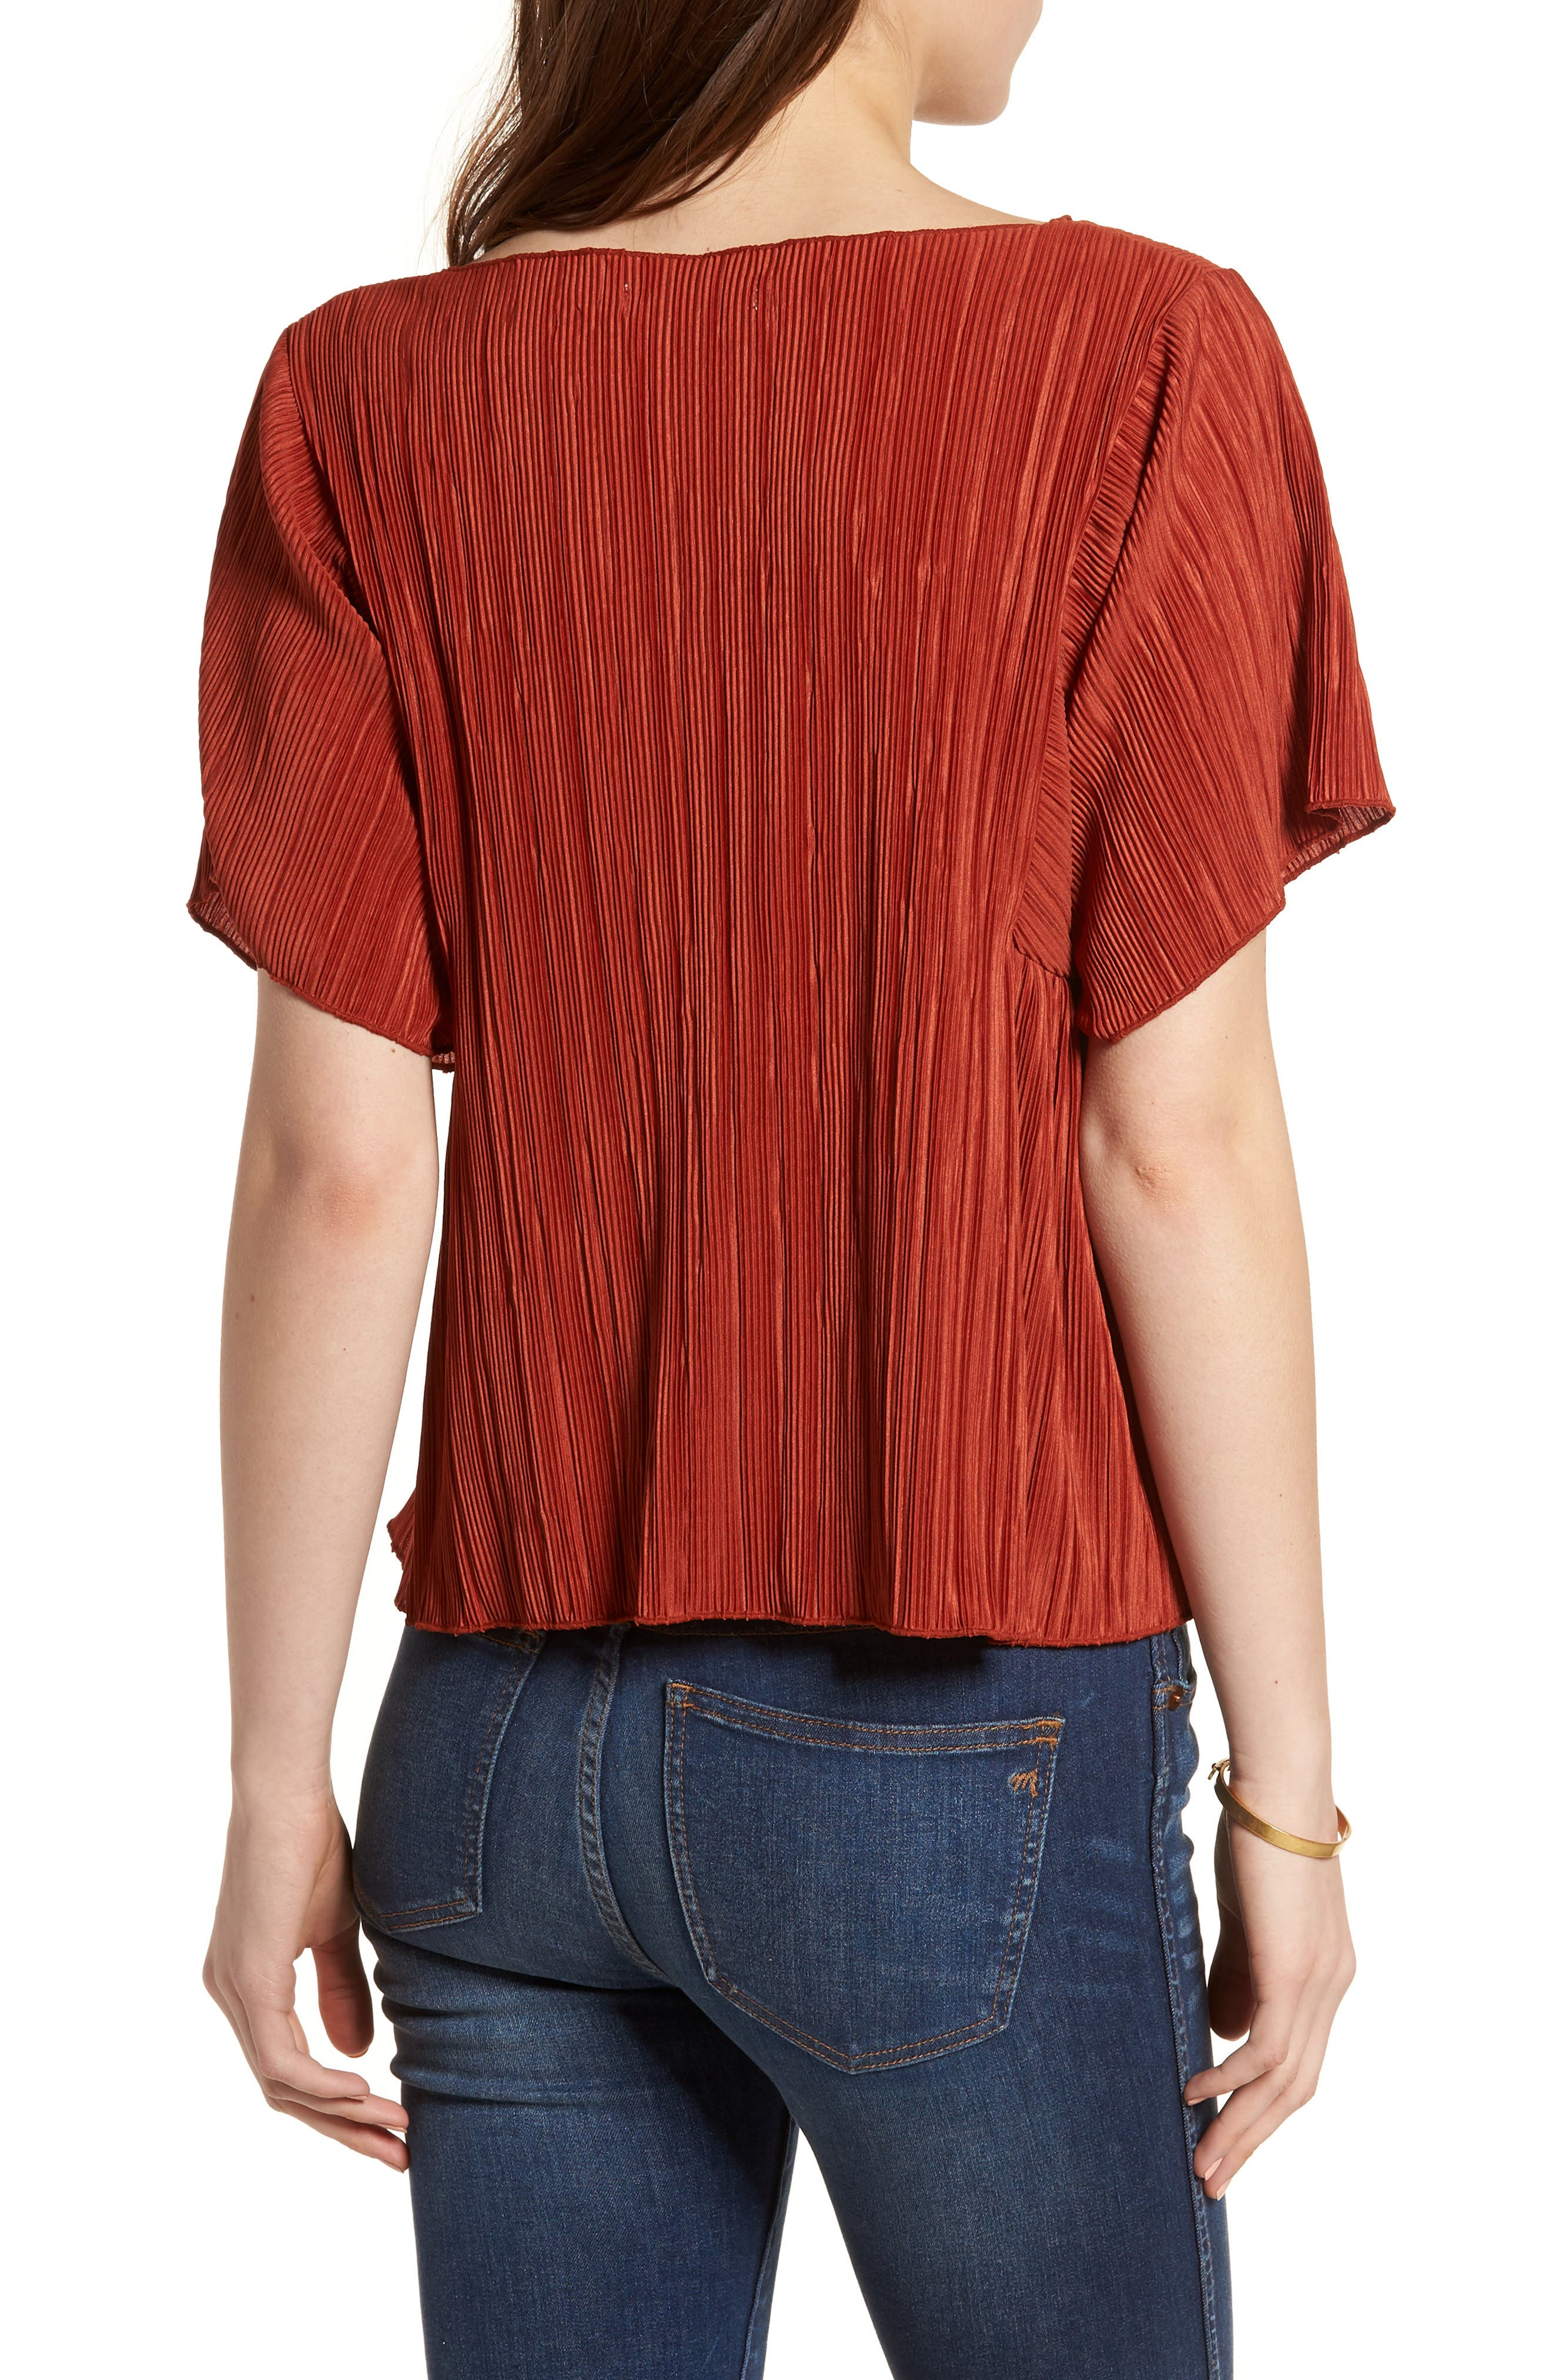 Micropleat Top,                             Alternate thumbnail 2, color,                             Rusty Torch